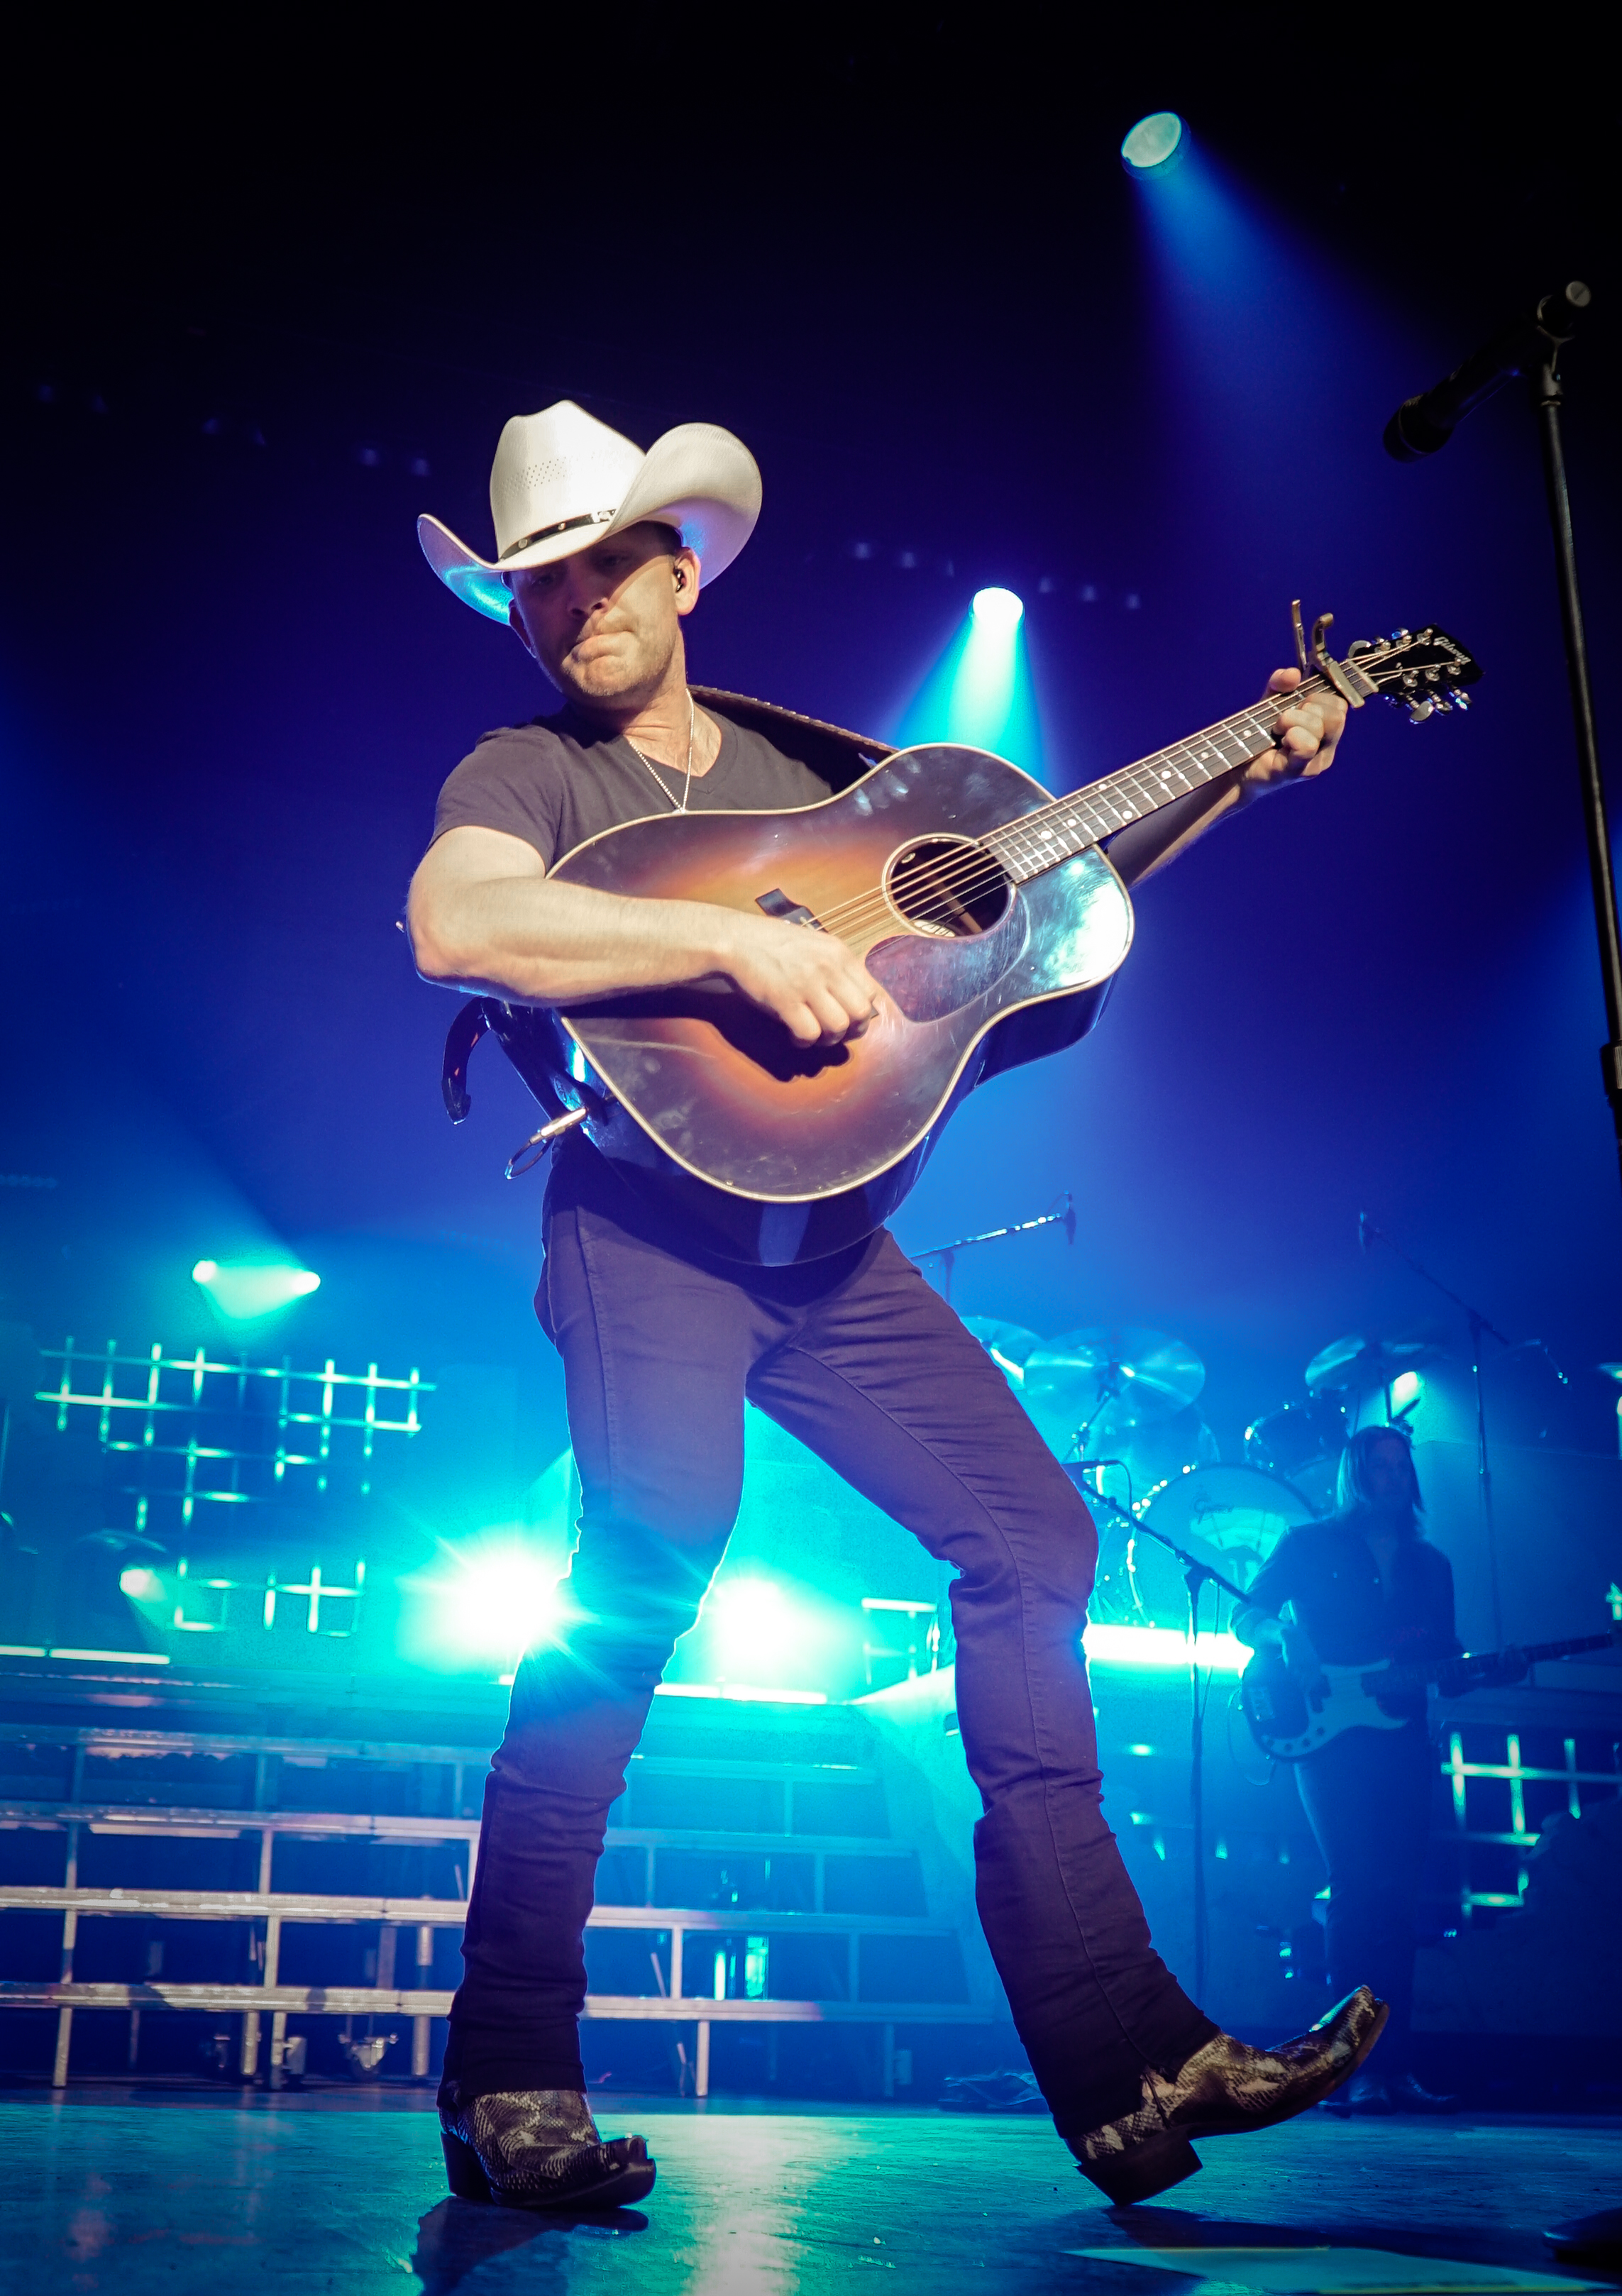 The 34-year old son of father (?) and mother(?) Justin Moore in 2018 photo. Justin Moore earned a  million dollar salary - leaving the net worth at 2 million in 2018